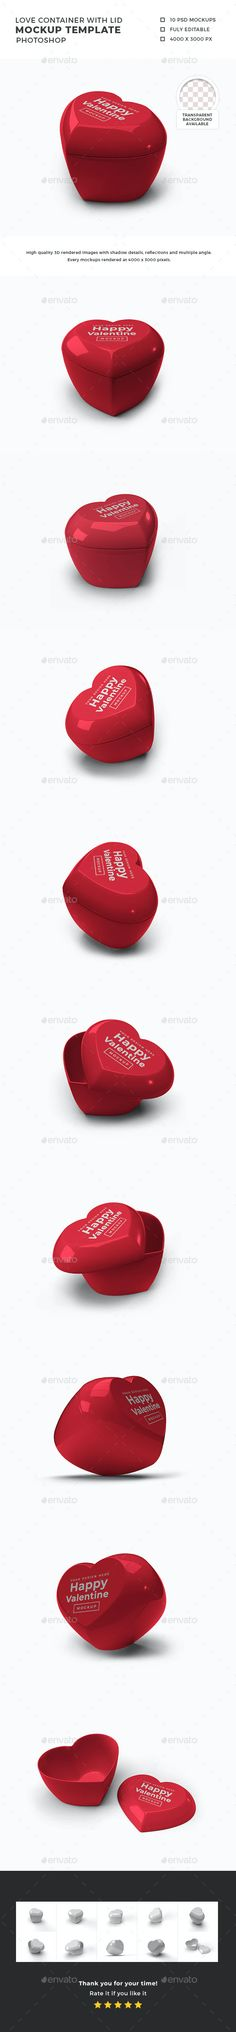 Valentine Love Container with Lid Mockup by DendySign | GraphicRiver